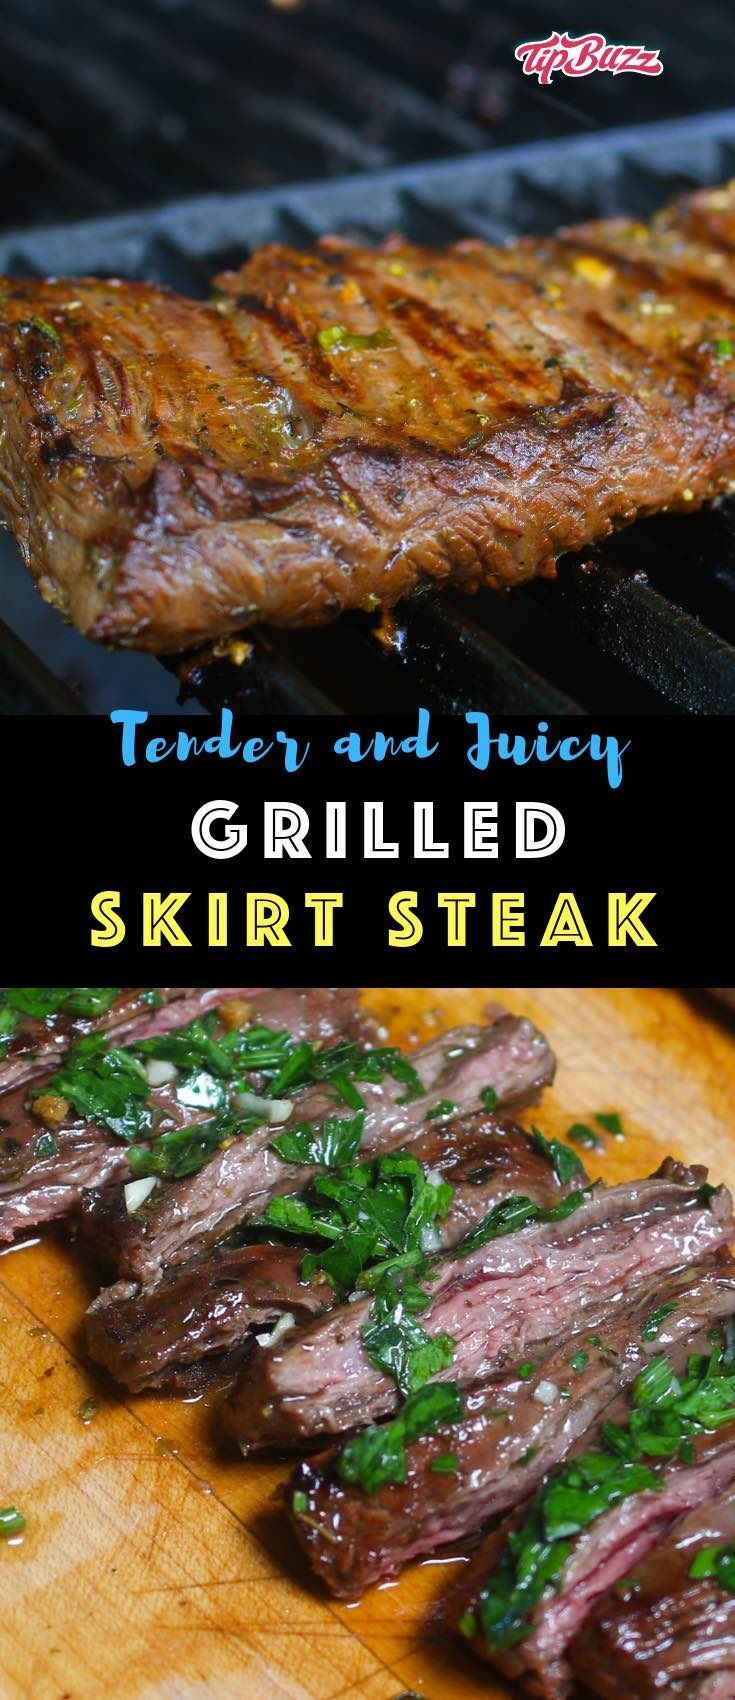 Grilled Marinated Skirt Steak - TipBuzz